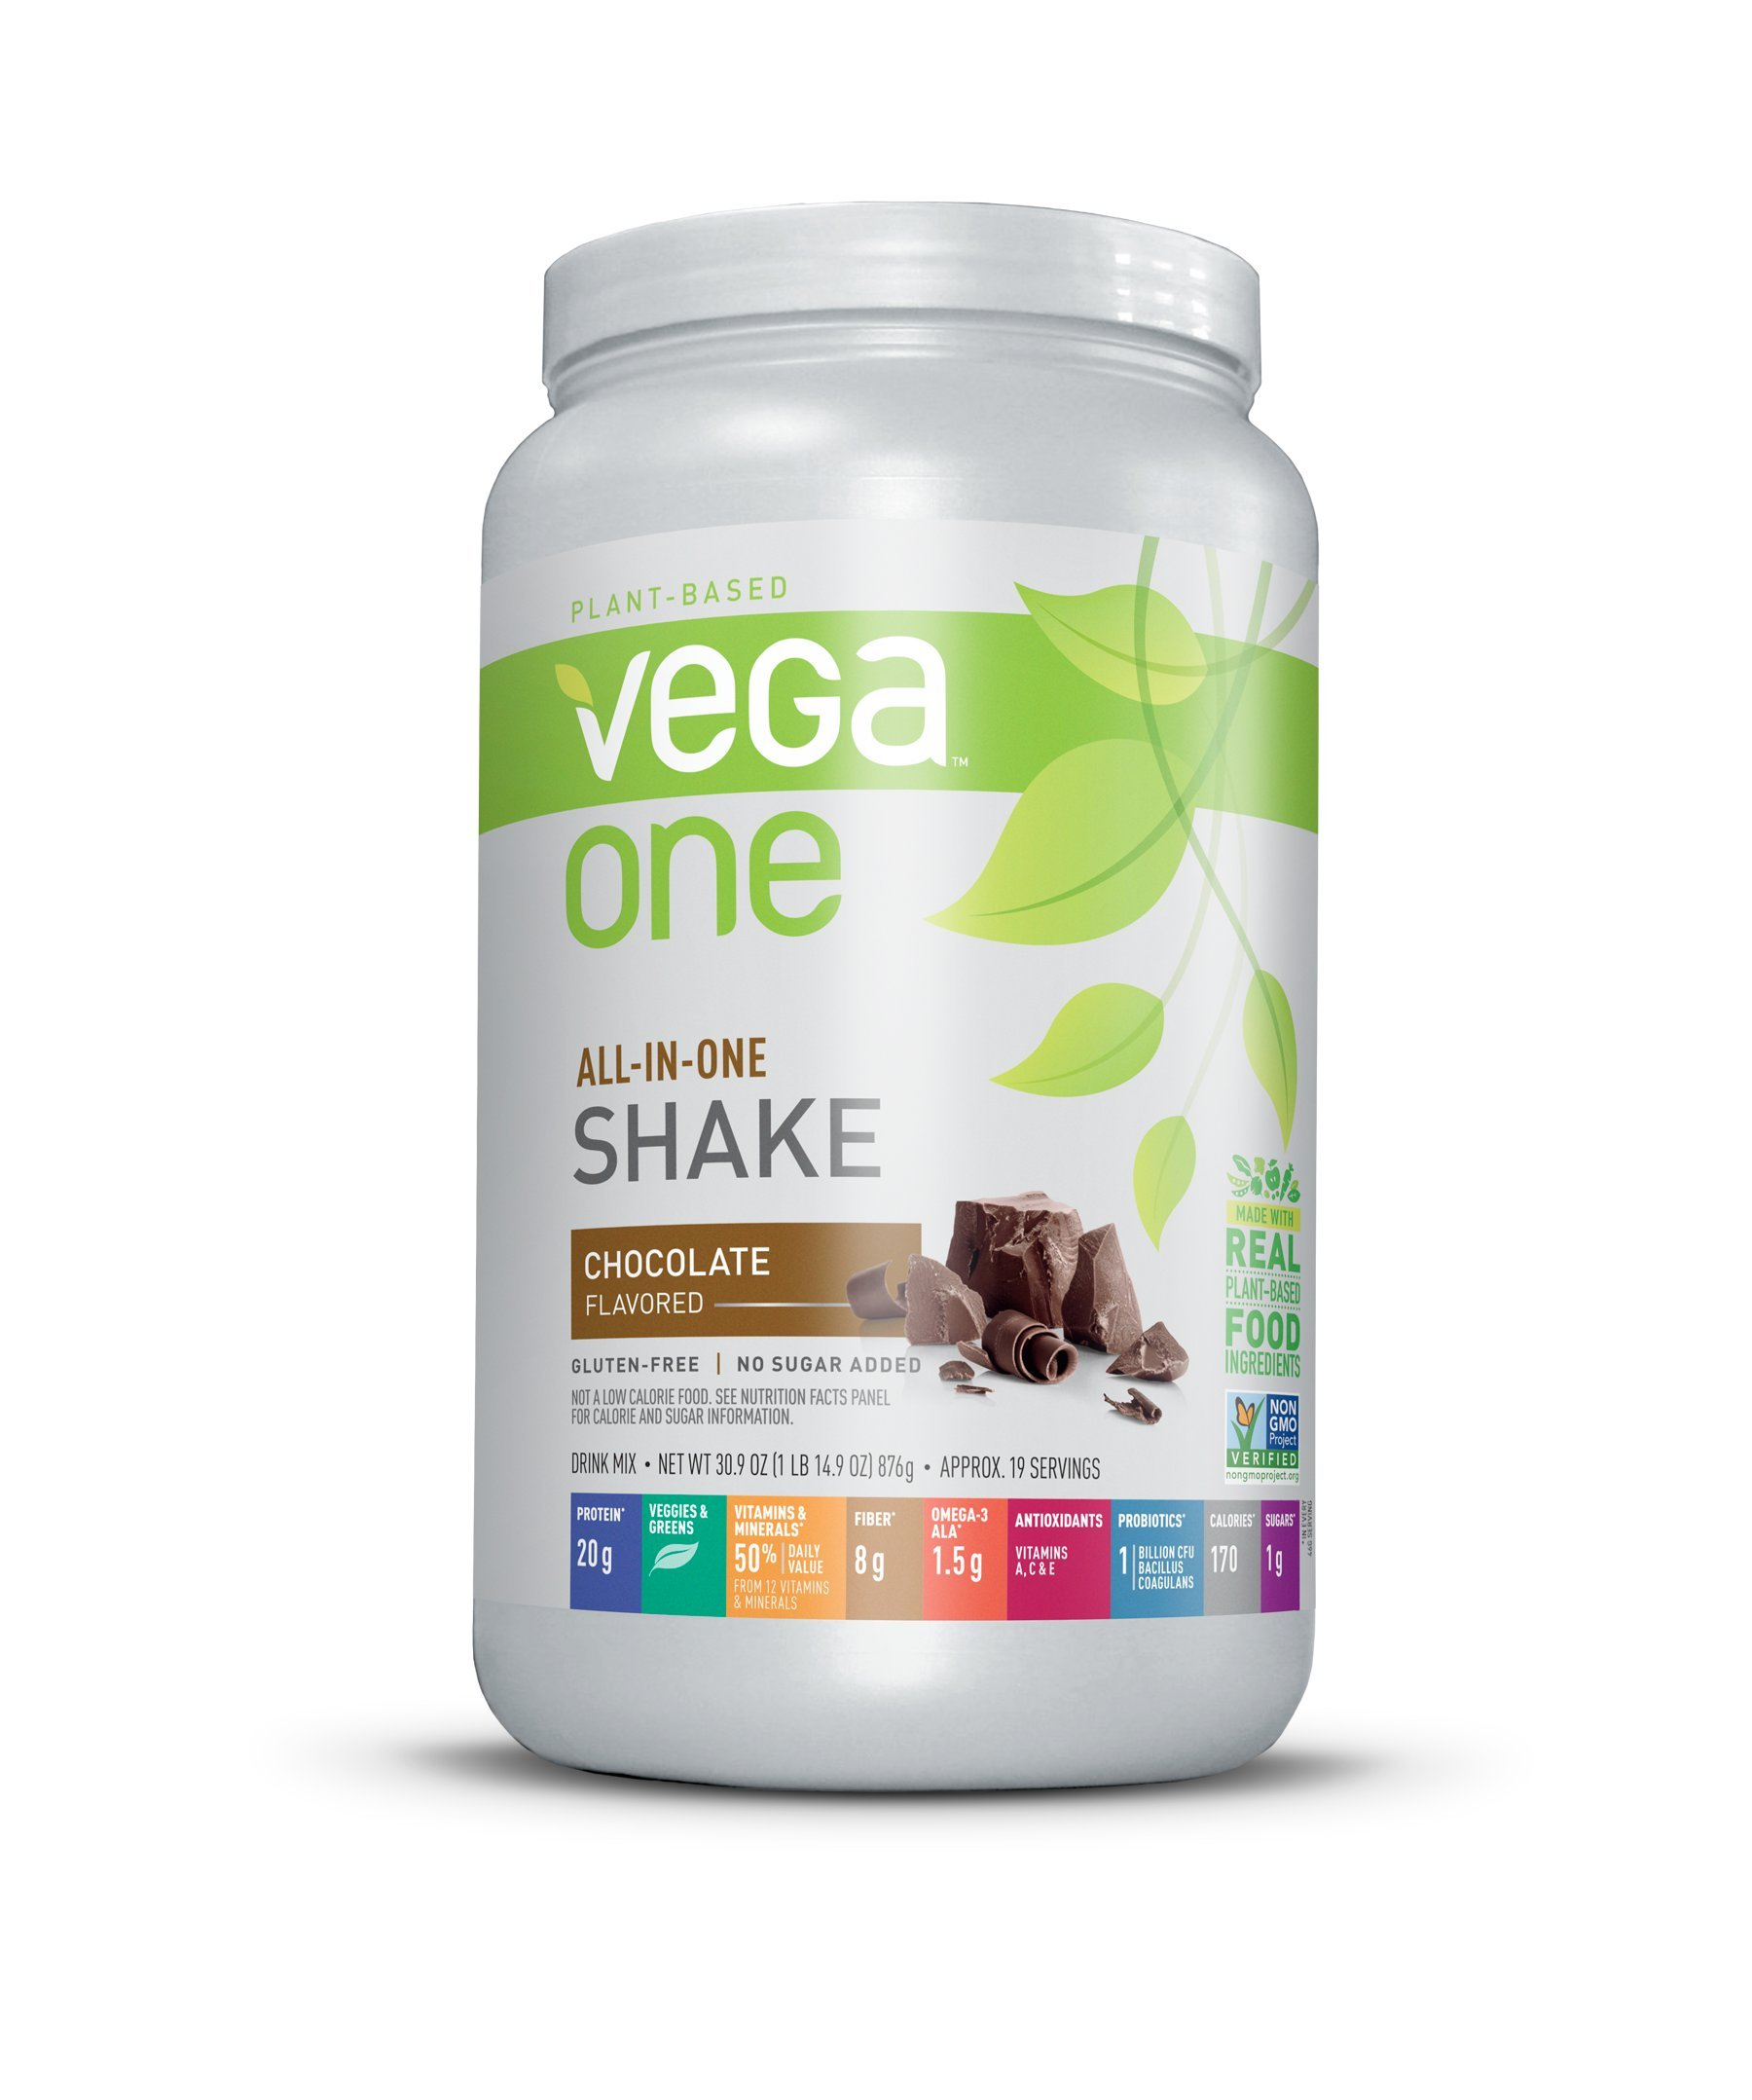 Vega One All-In-One Nutritional Shake Chocolate (19 Servings) - Plant Based Vegan Protein Powder, Non Dairy, Gluten Free, Non GMO, 30.9 Ounce (Pack of 1) by VEGA